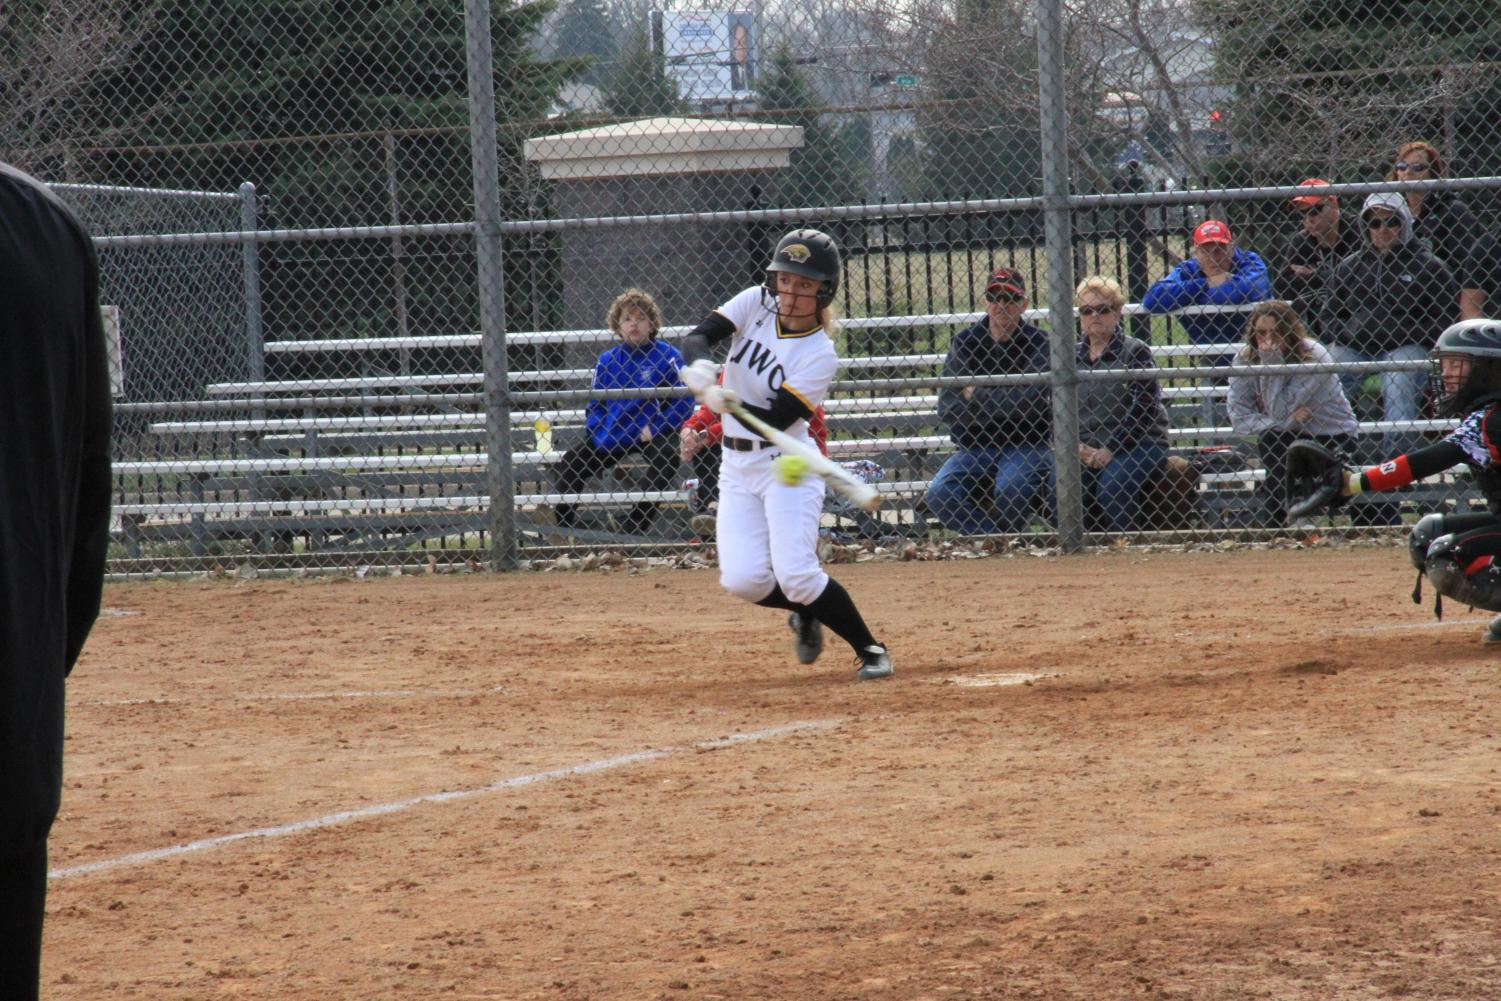 Smaney connects at the plate during doubleheader against the Red Hawks.